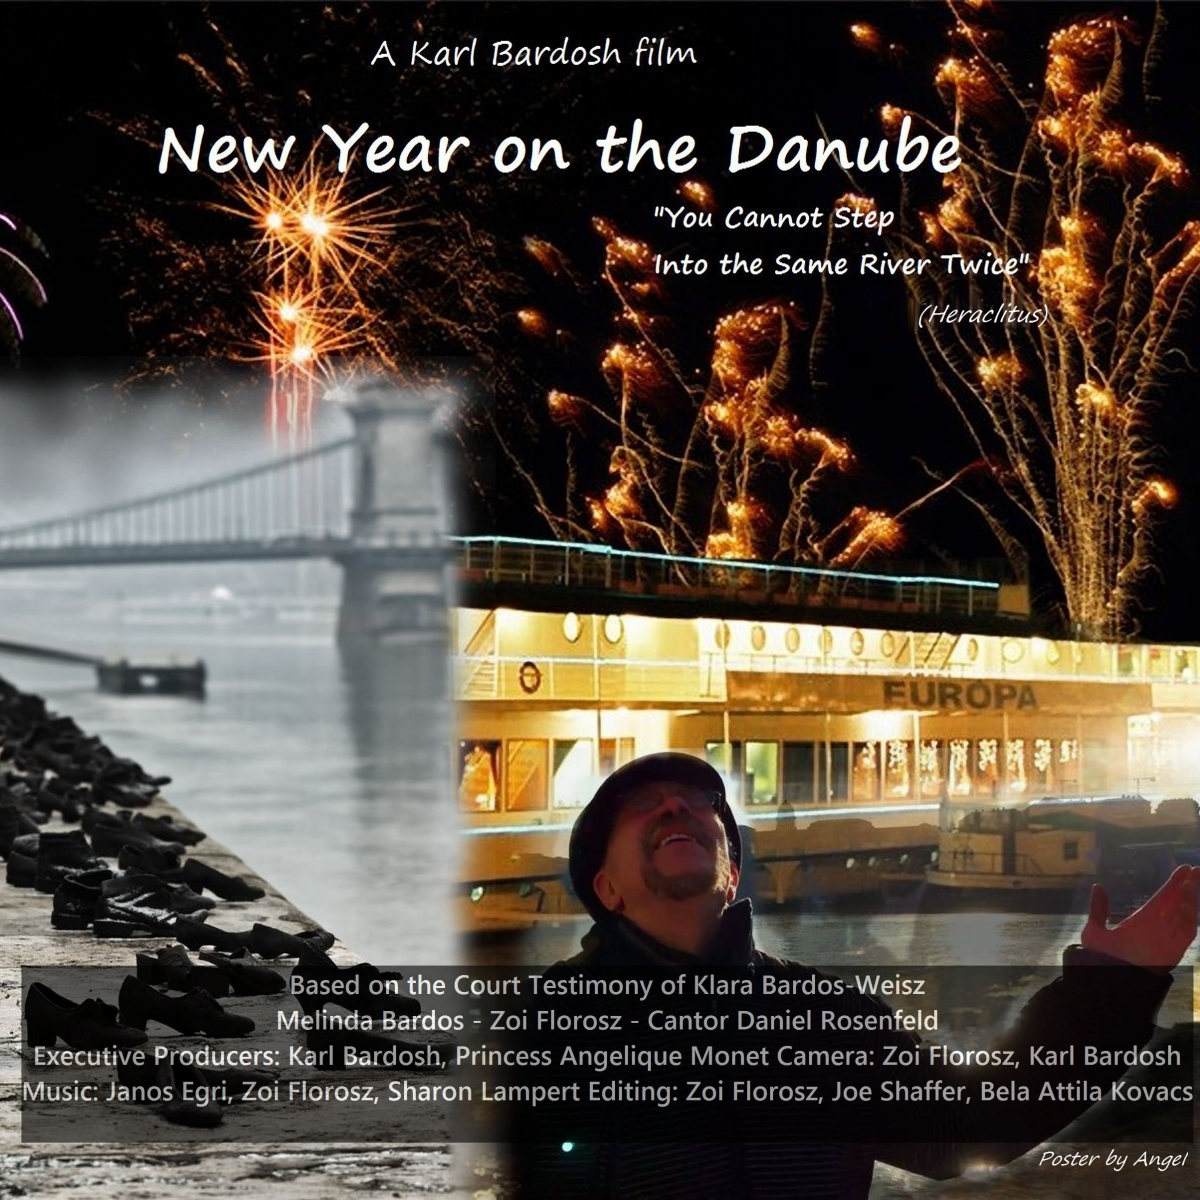 New Year on the Danube Film Post